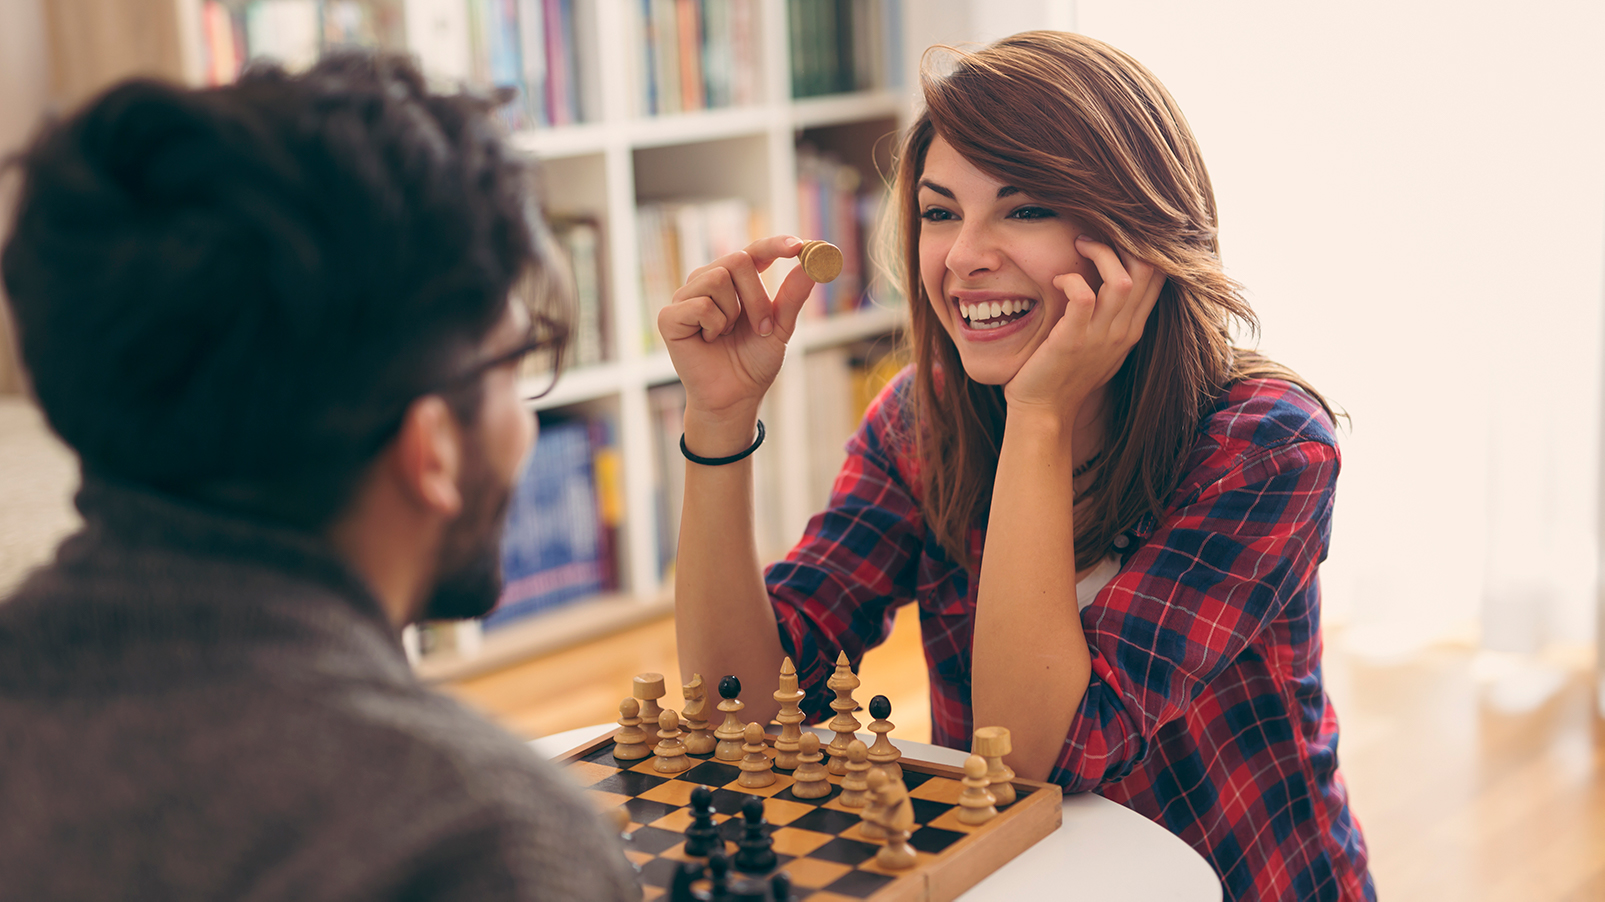 Fun Games For Couples 13 Games For Two To Play Indoors Cnn Underscored